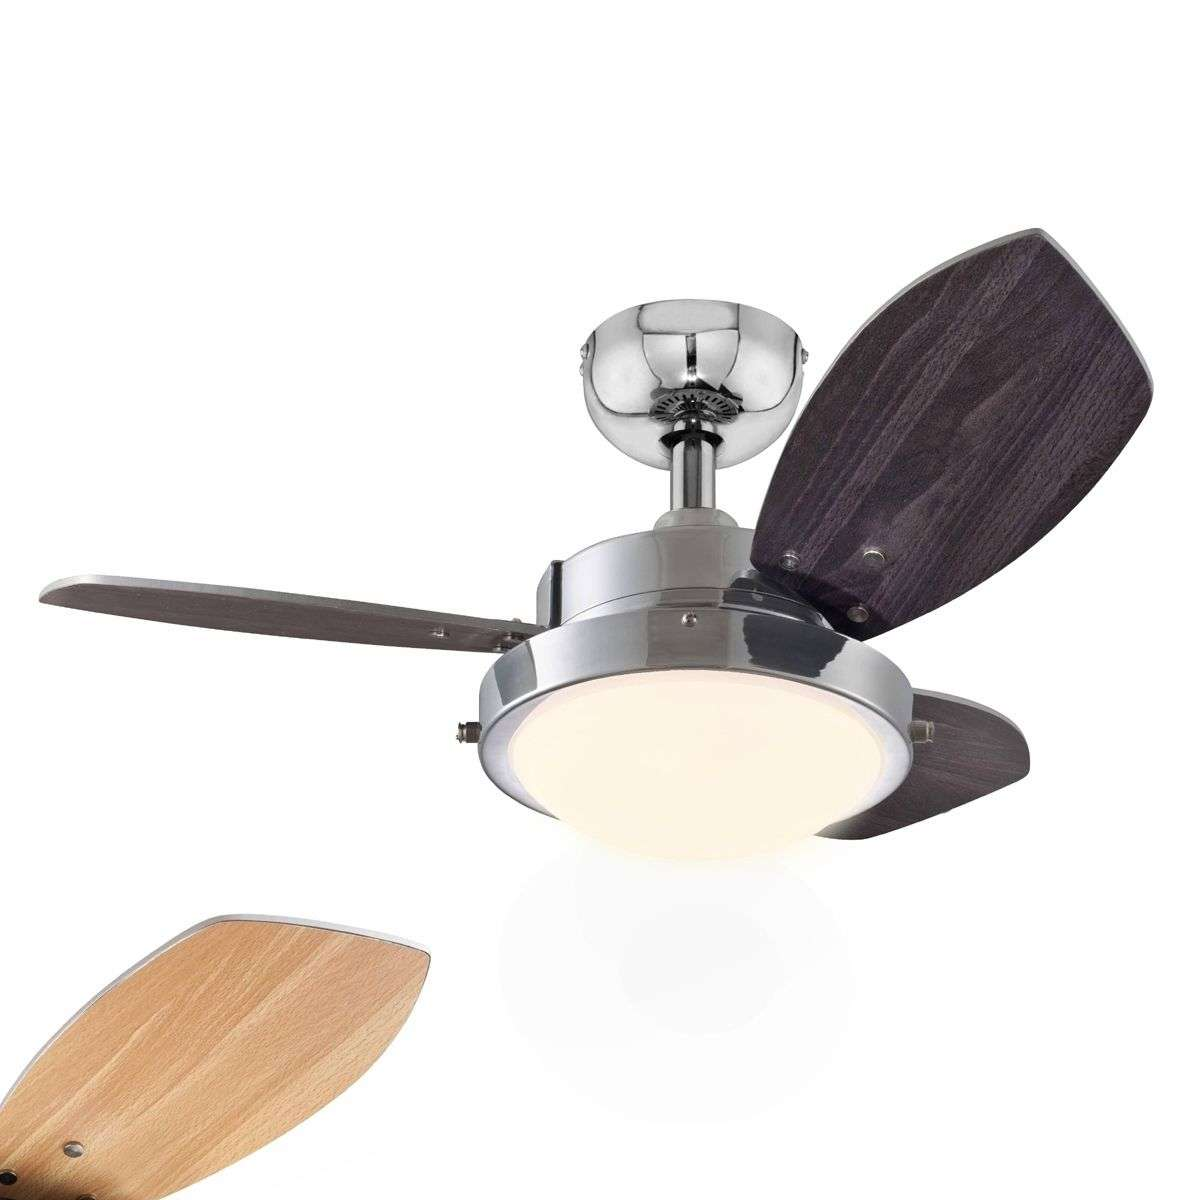 Wenge ceiling fan with halogen lamp lights wenge ceiling fan with halogen lamp aloadofball Gallery